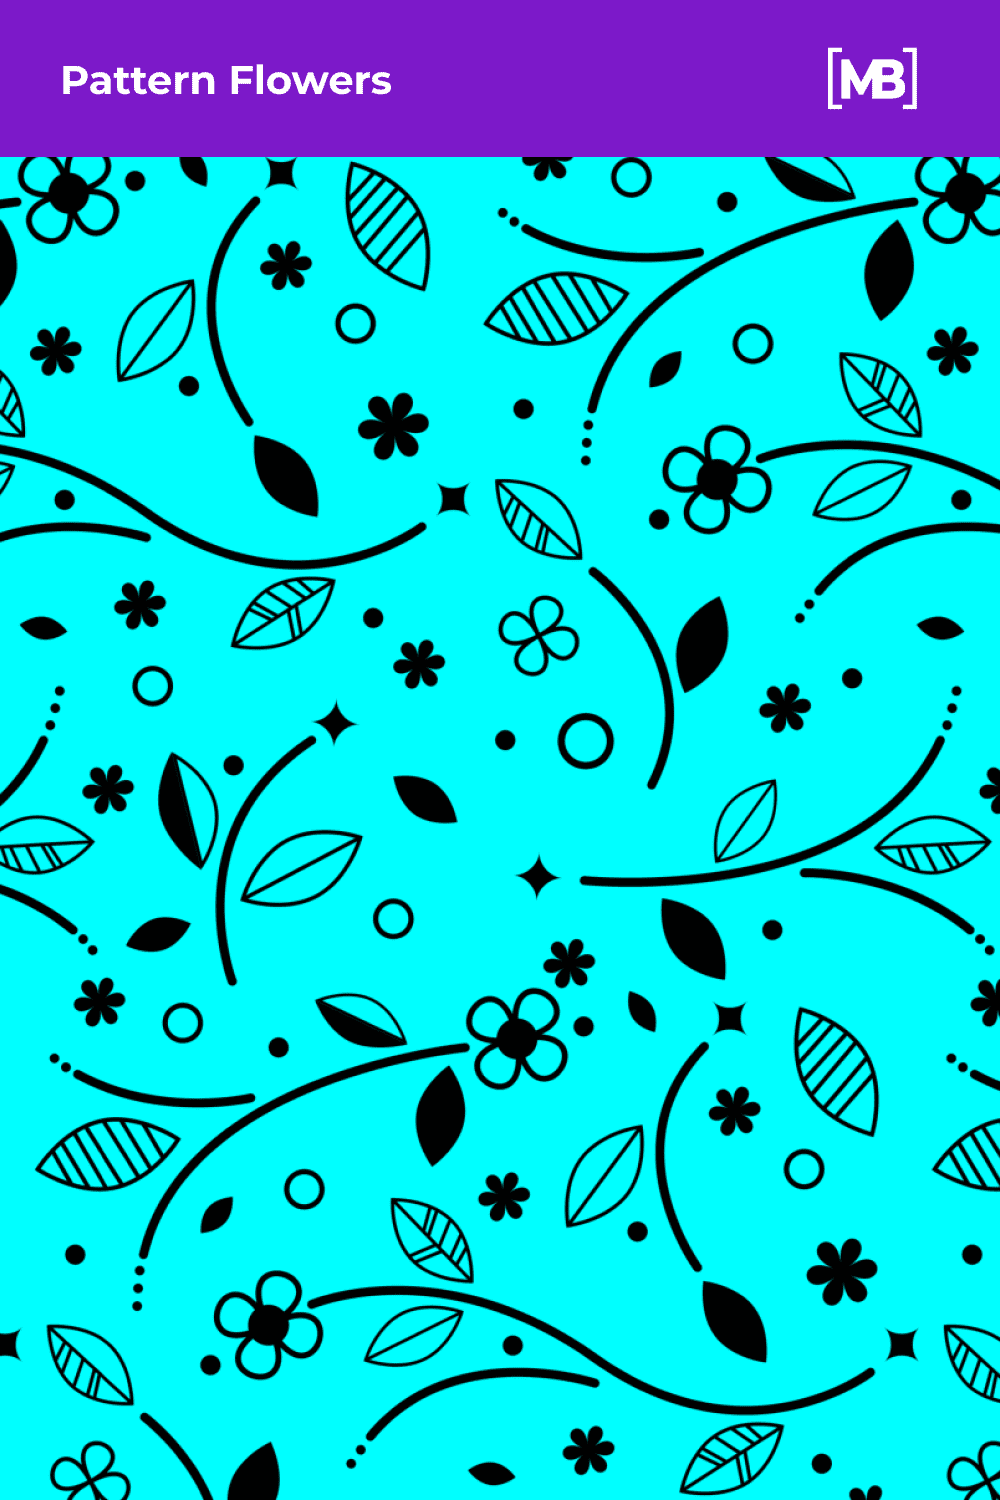 Flowers ornament in black color.